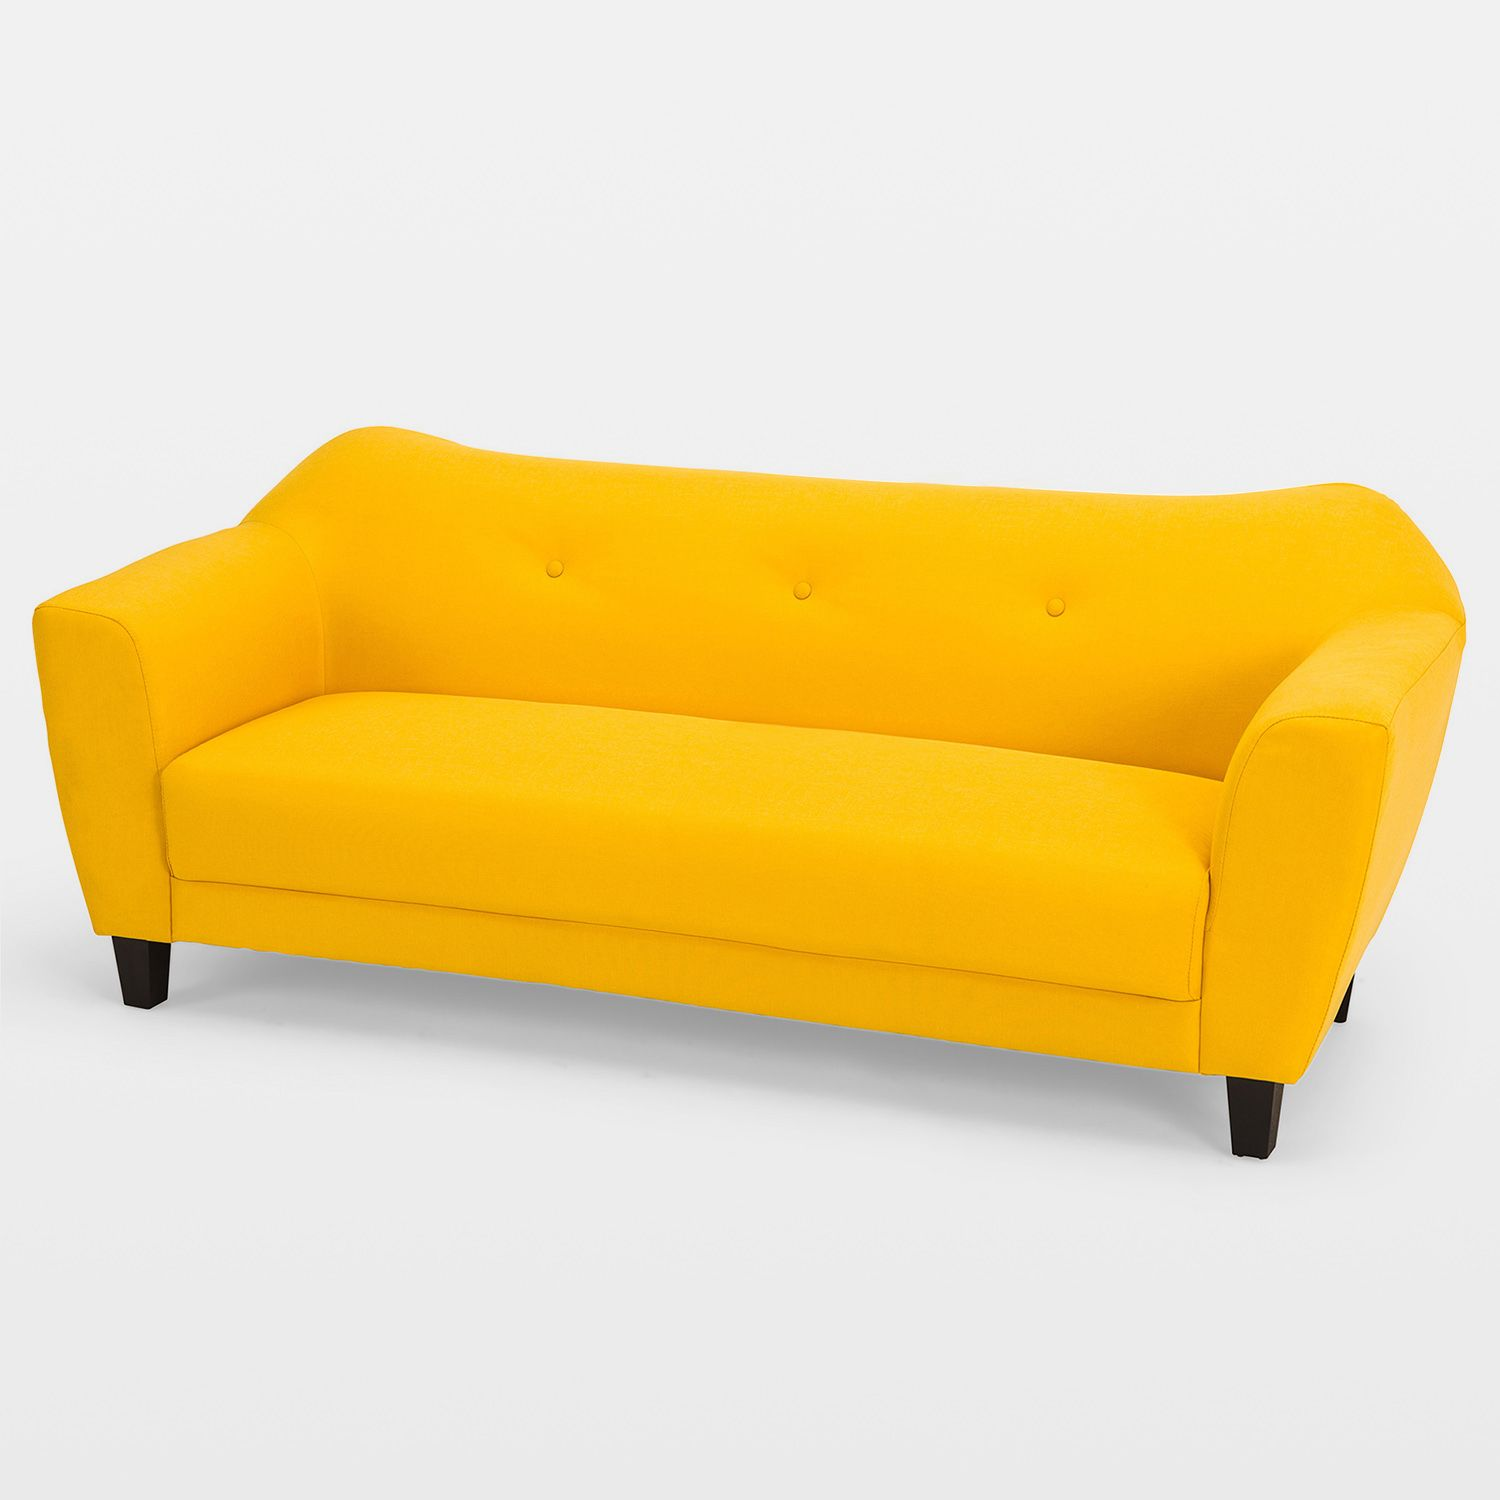 Cassie 3 Seater Fabric Sofa Next Day Delivery Cassie 3 Seater Fabric Sofa Sofa Next Sofa Fabric Sofa